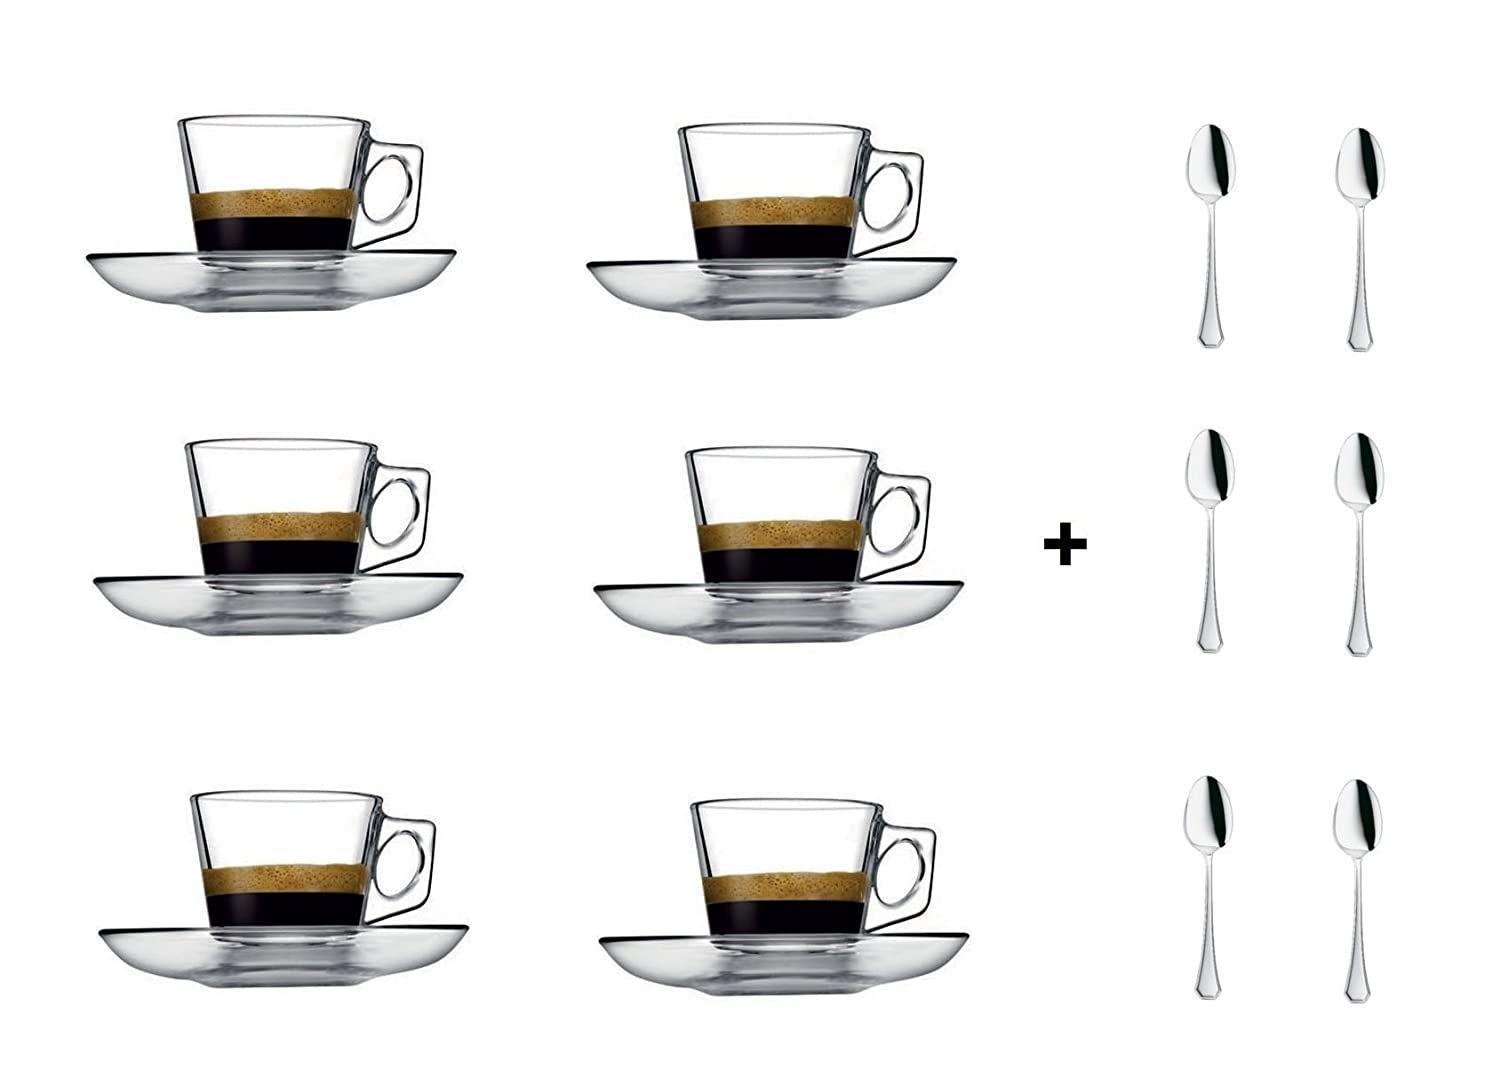 VELA 3.2-Ounce. Small Demitasse Clear Glass Espresso Drinkware, Set of 6 Cups/Saucers + Set of 6 Stainless Steel 18/10 mini Espresso Spoons! Hostess, Coffee Lover/Enthusiast, Espresso. PASABACHE